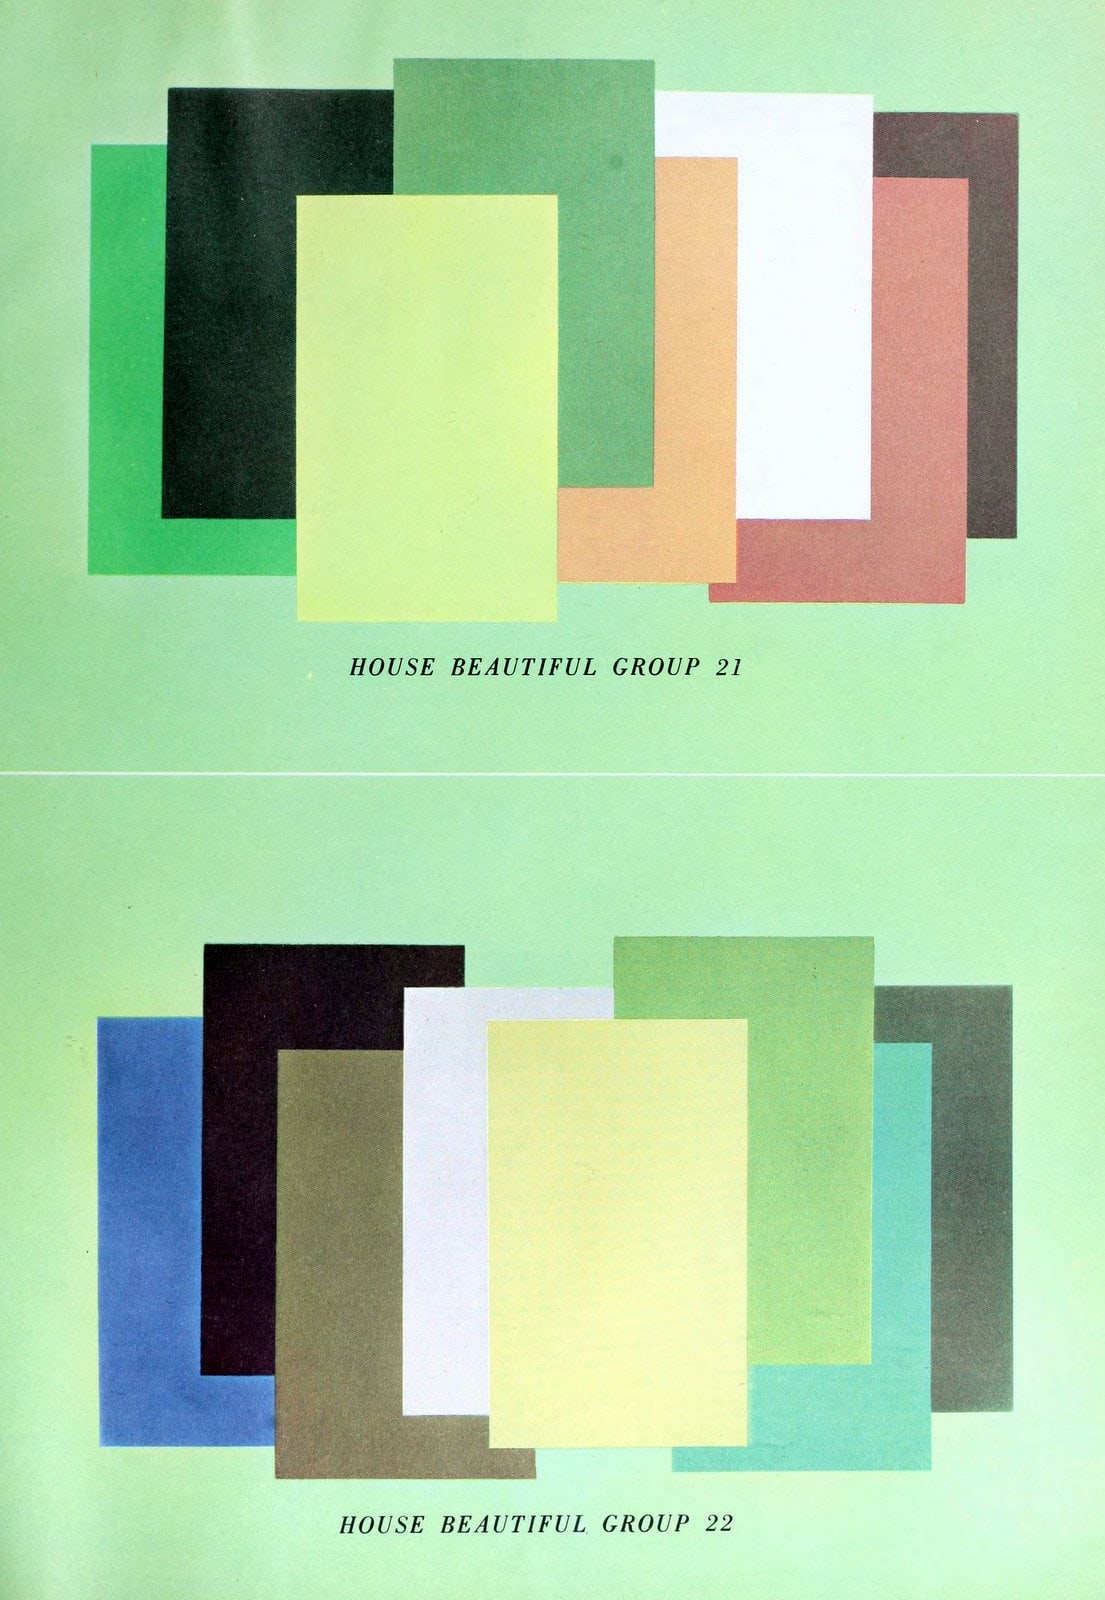 Vintage House Beautiful color schemes from 1959 (6)